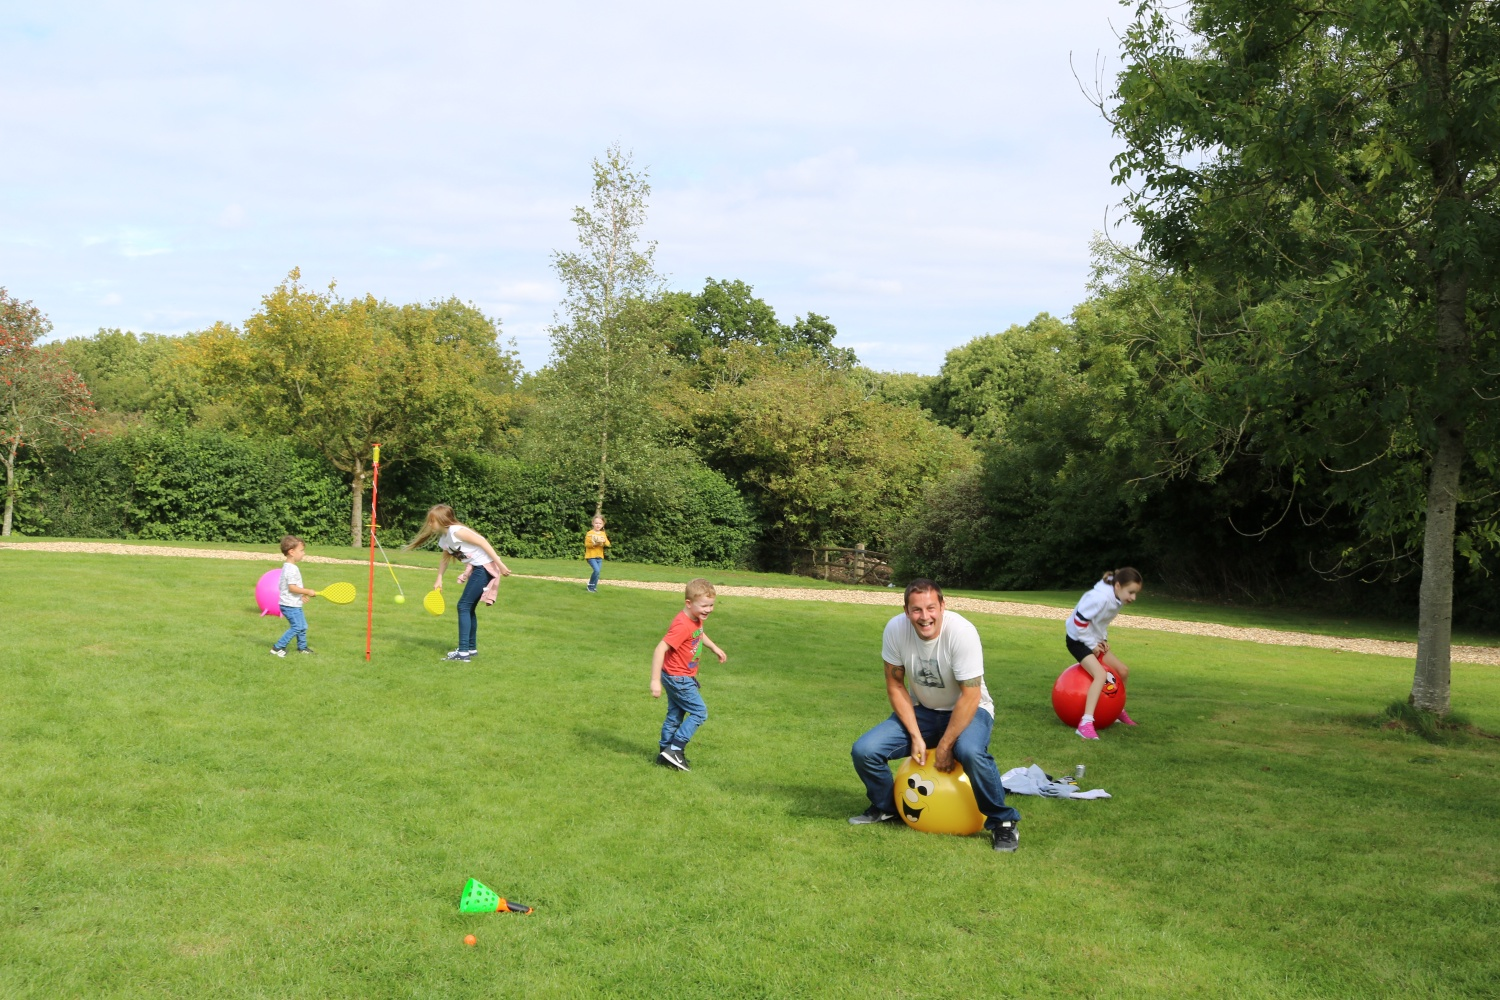 Games-Outside-Lilycombe - Copy.JPG